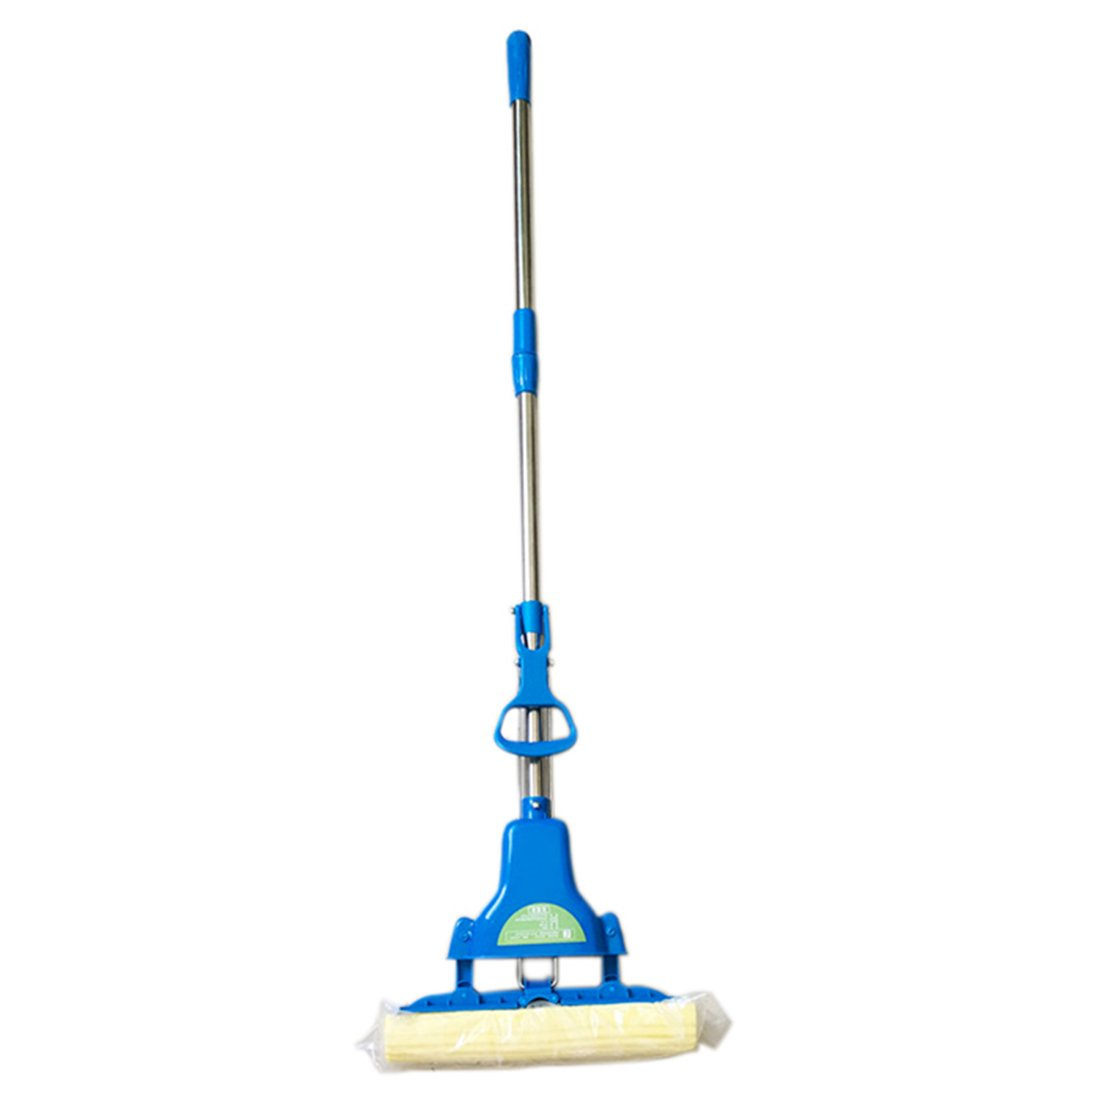 Dingtuo Absorbent Floor Mop with Stainless Steel Rod for Window Bathroom Glass Blue